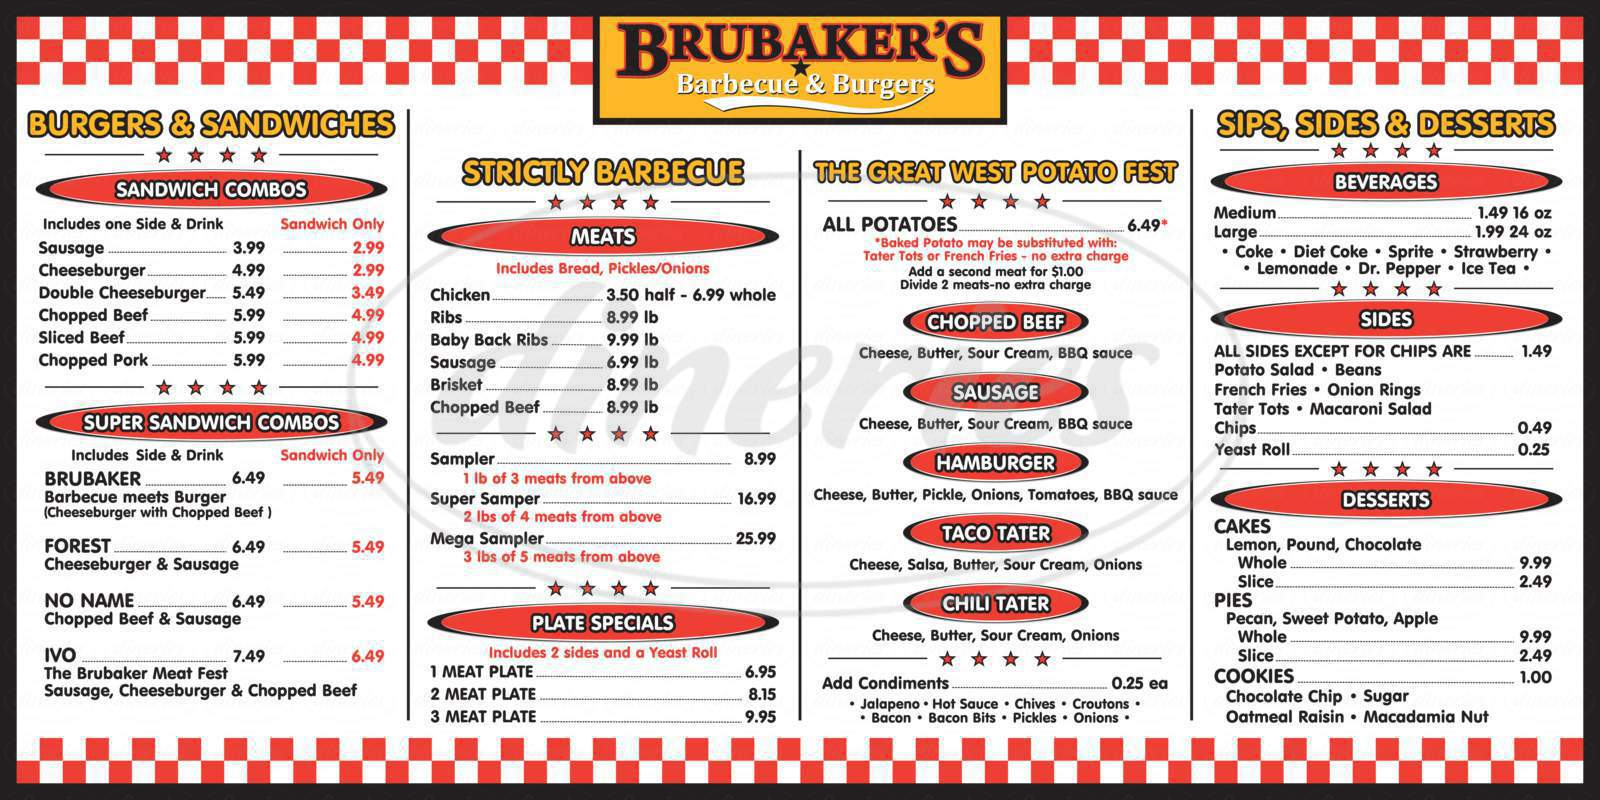 menu for Brubaker's Barbeque & Burgers